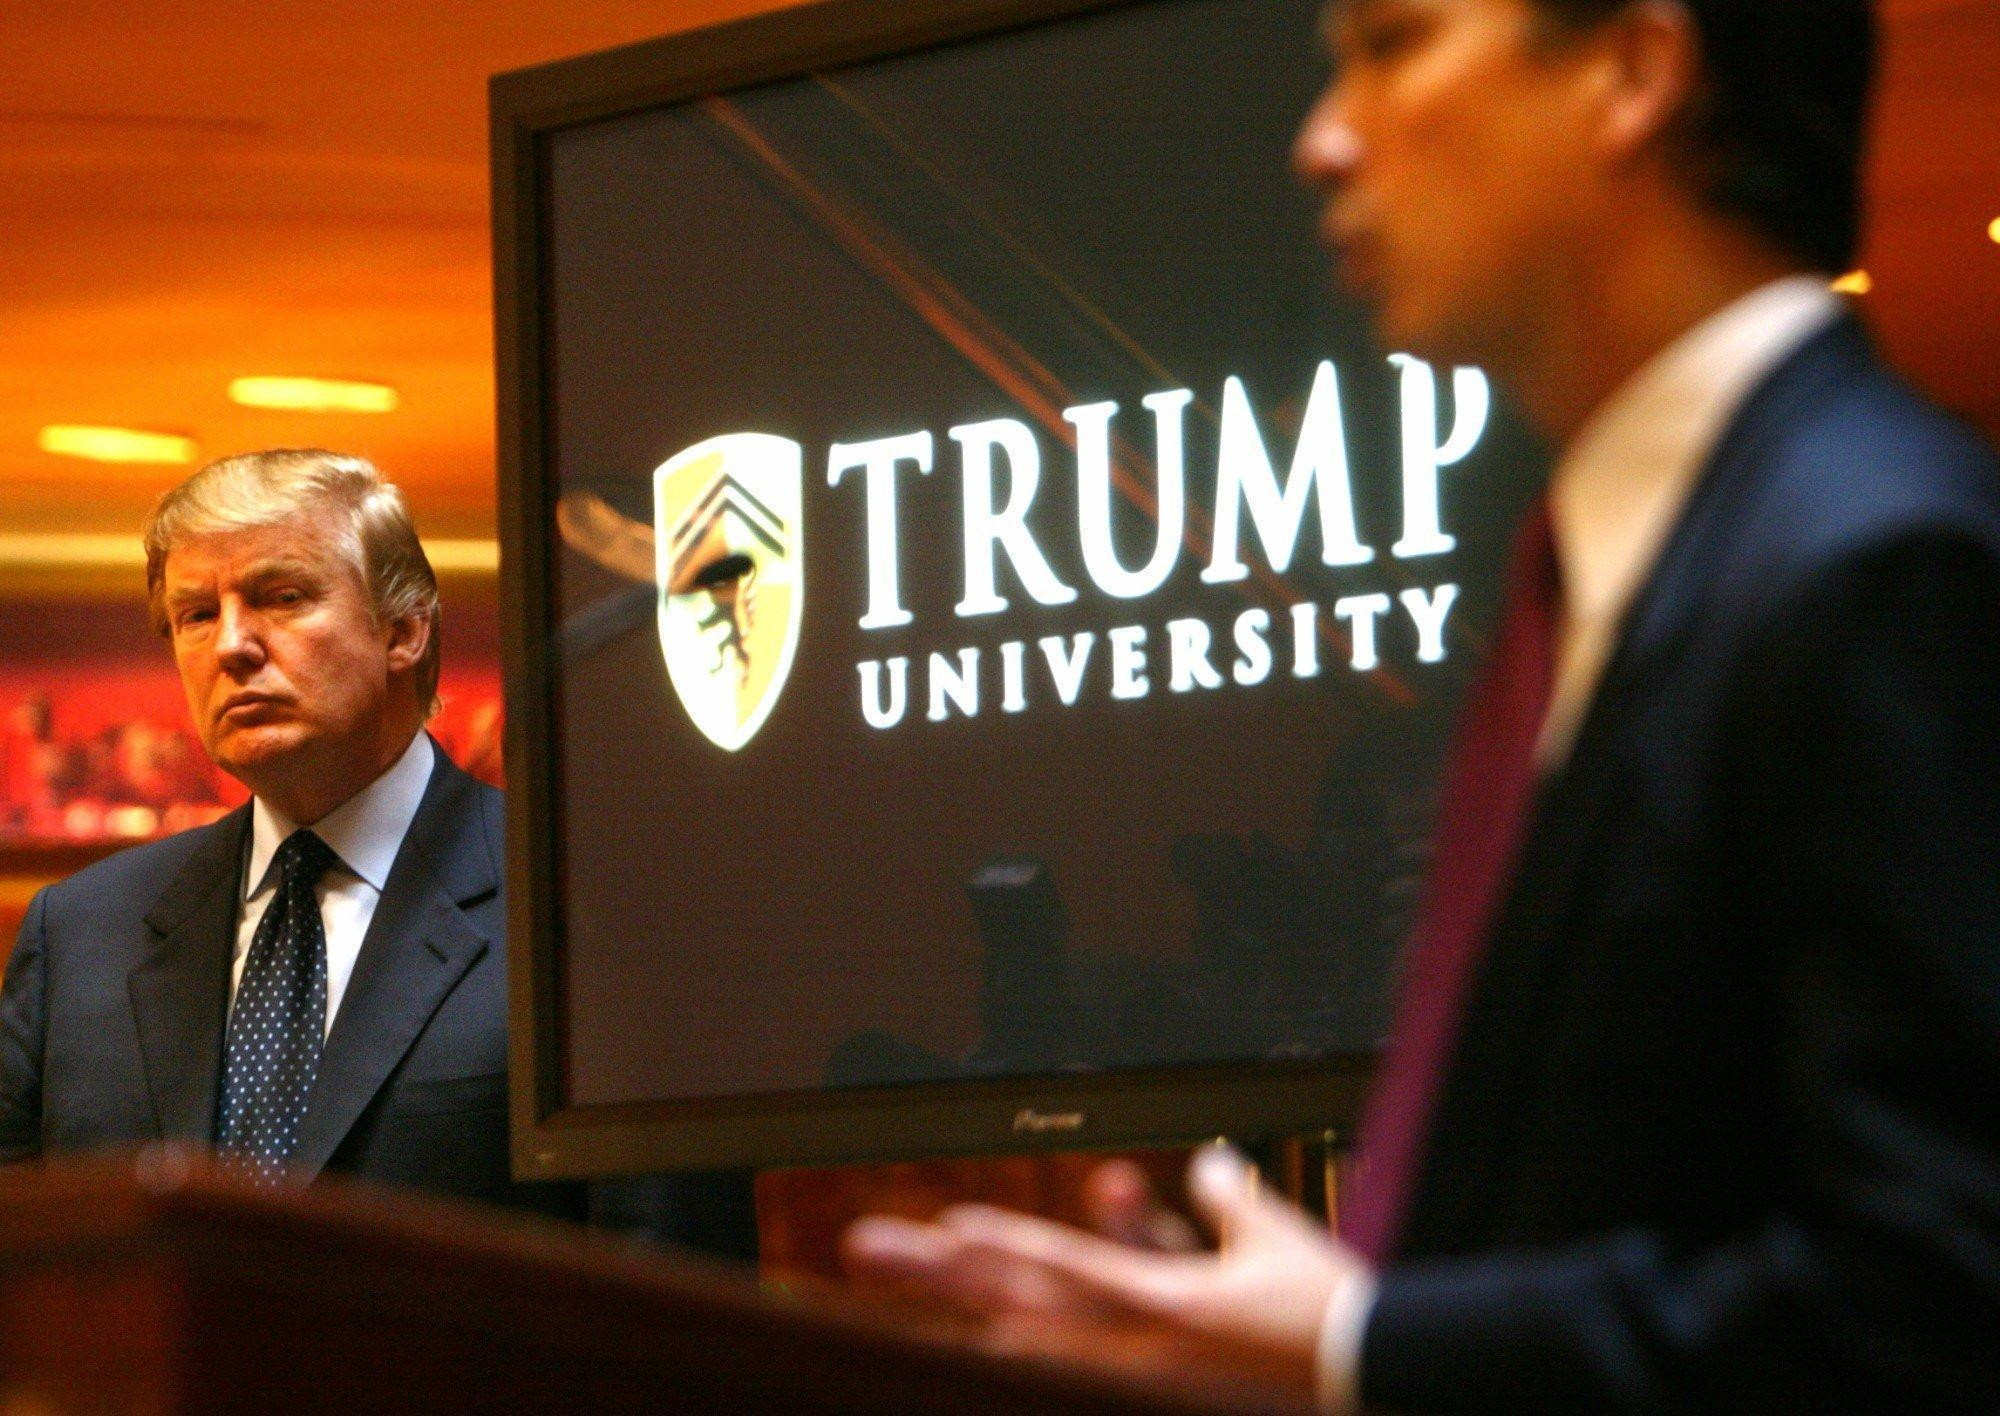 Donald Trump fights to keep videos of his Trump University testimony  private   LA Times. Donald Trump fights to keep videos of his Trump University